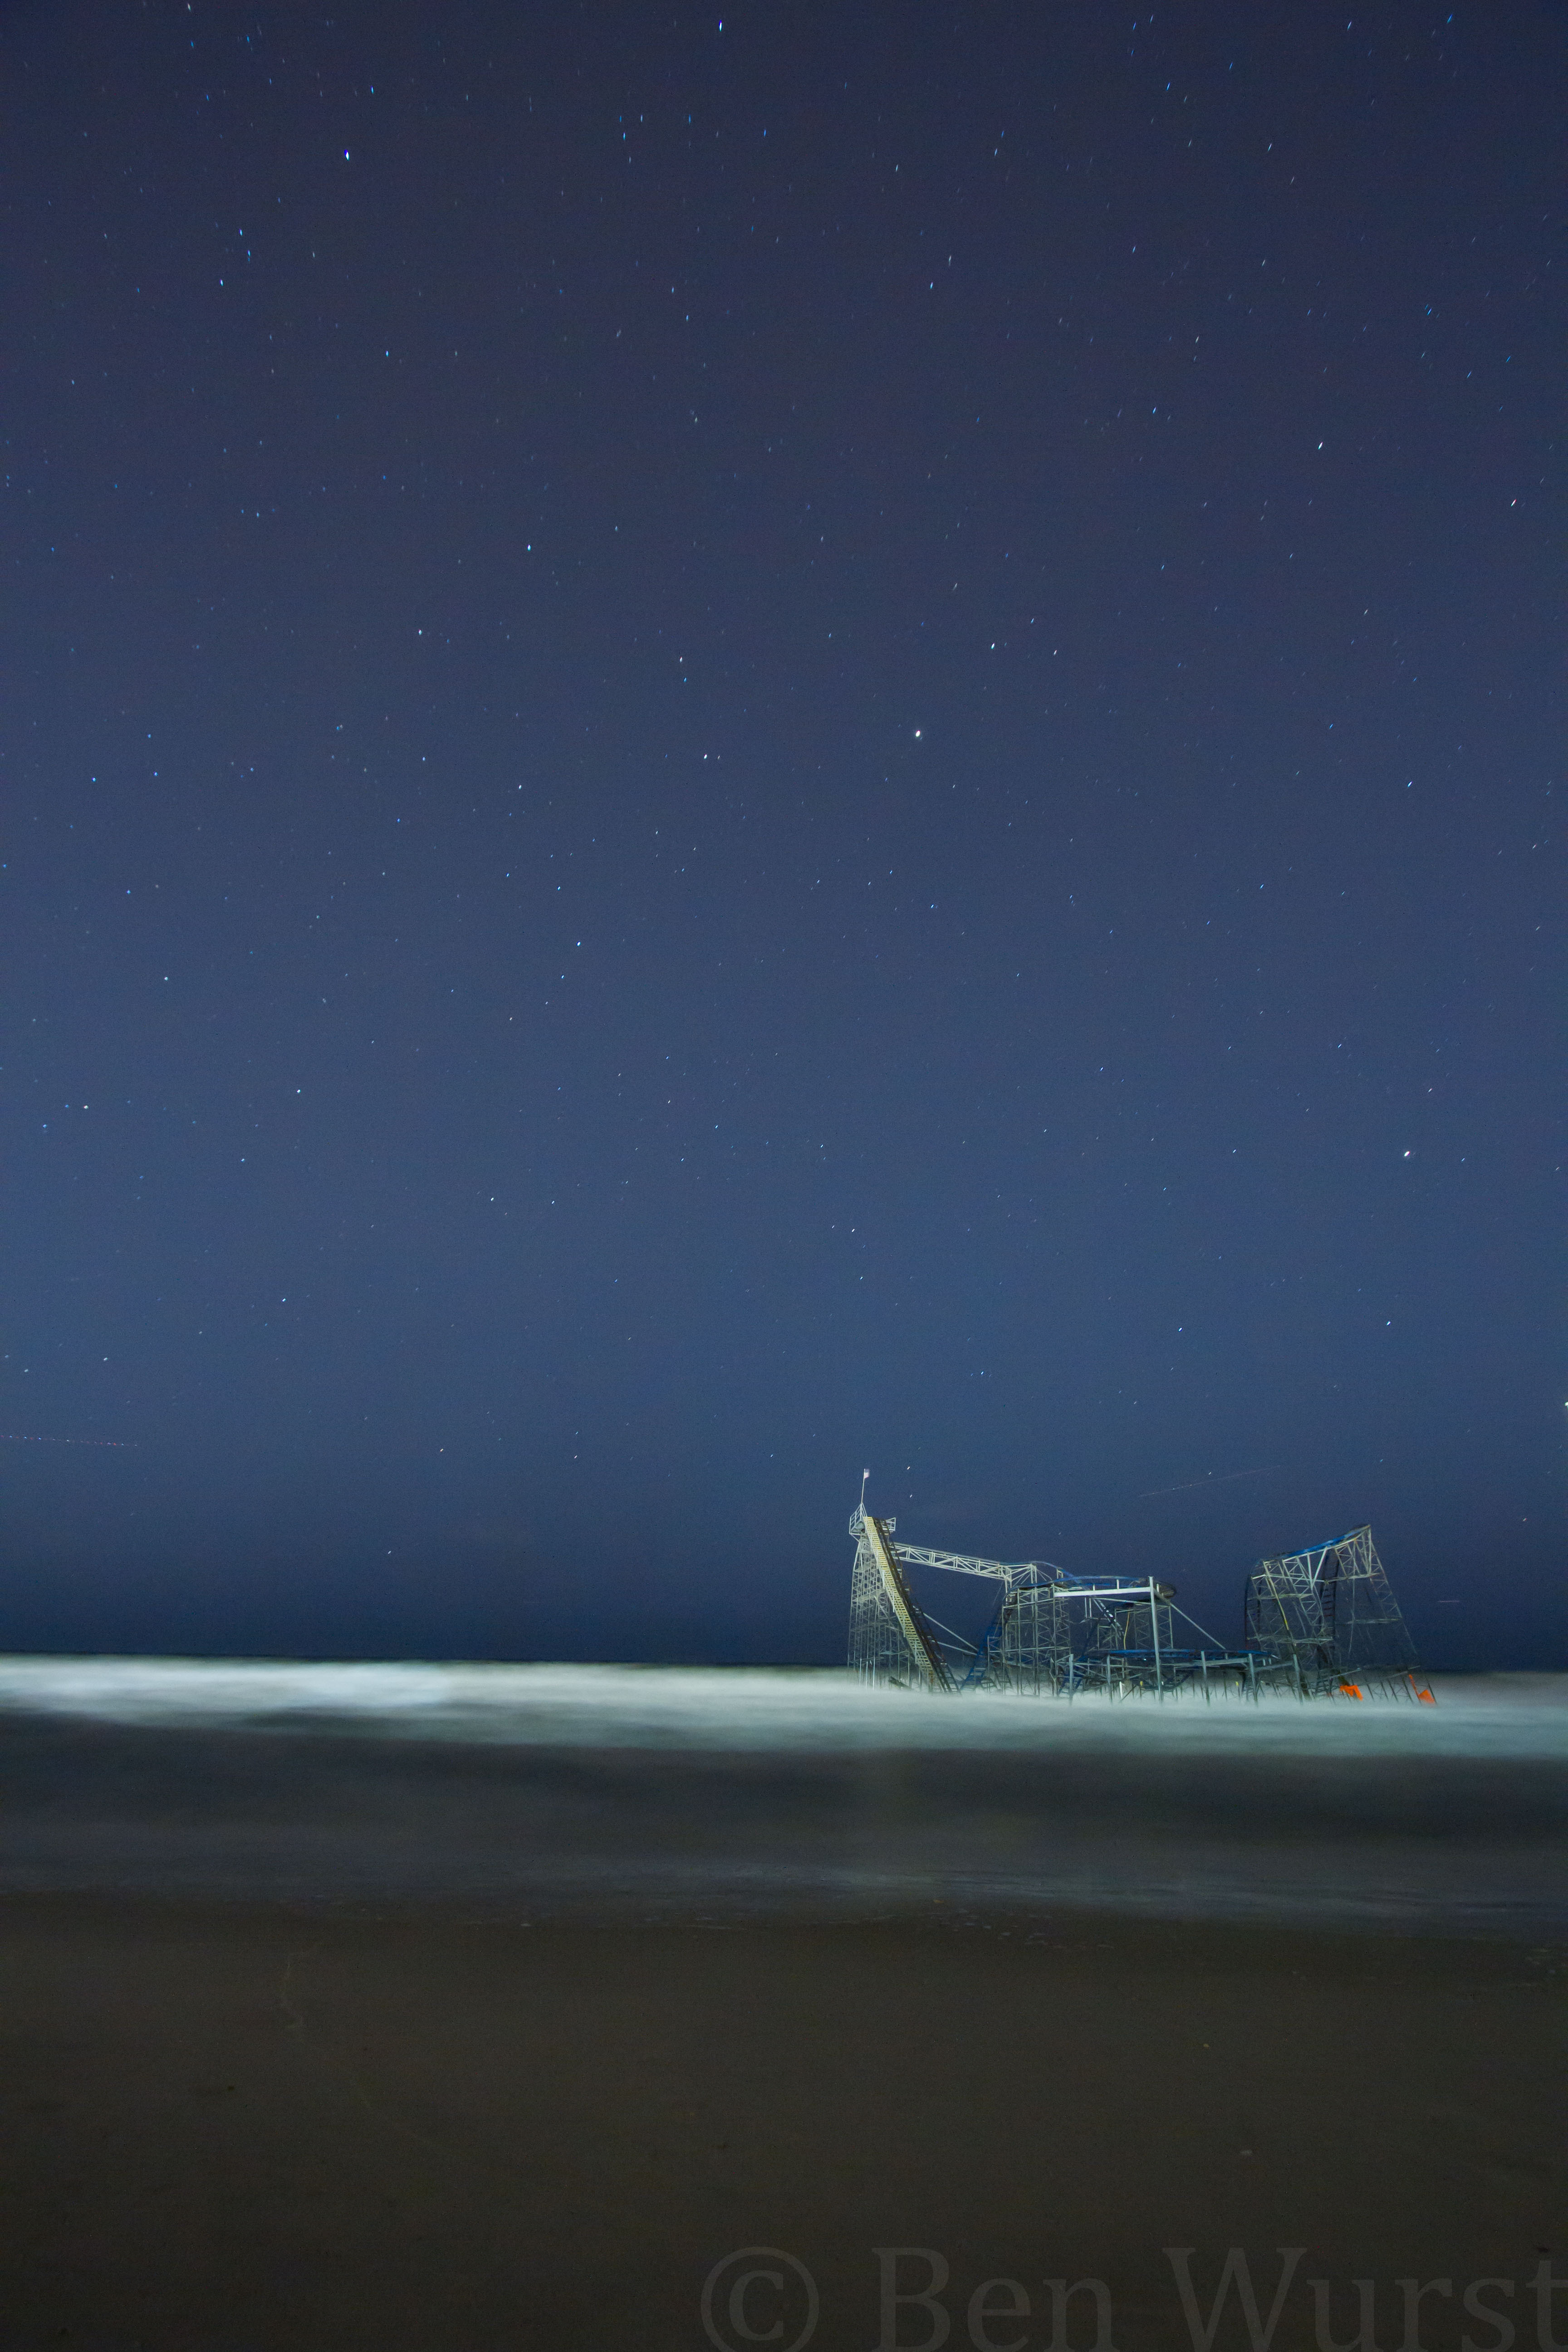 The iconic Jet Star roller coaster awaits removal from the Atlantic Ocean.